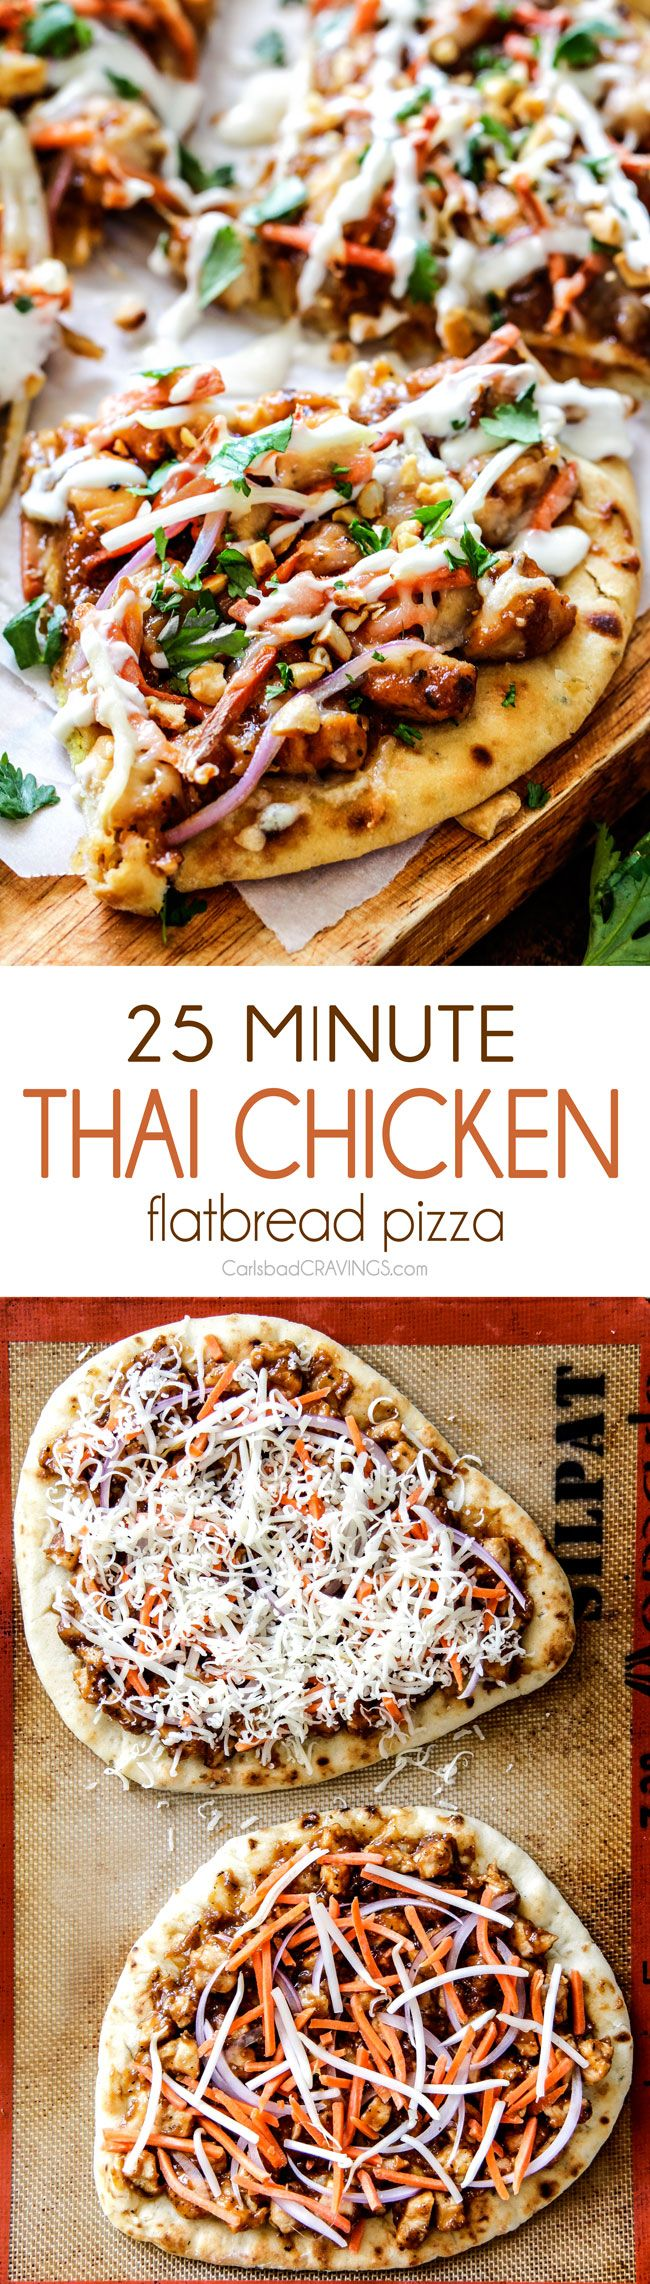 CPK inspired 25 Minute Thai Chicken Flatbread Pizza smothered in easy tangy peanut sauce, tender chicken, mozzarella cheese, crunchy carrots, sprouts and peanuts and the option of creamy coconut yogurt drizzle - an amazing flavor bursting quick dinner at a fraction of the cost. via @carlsbadcraving